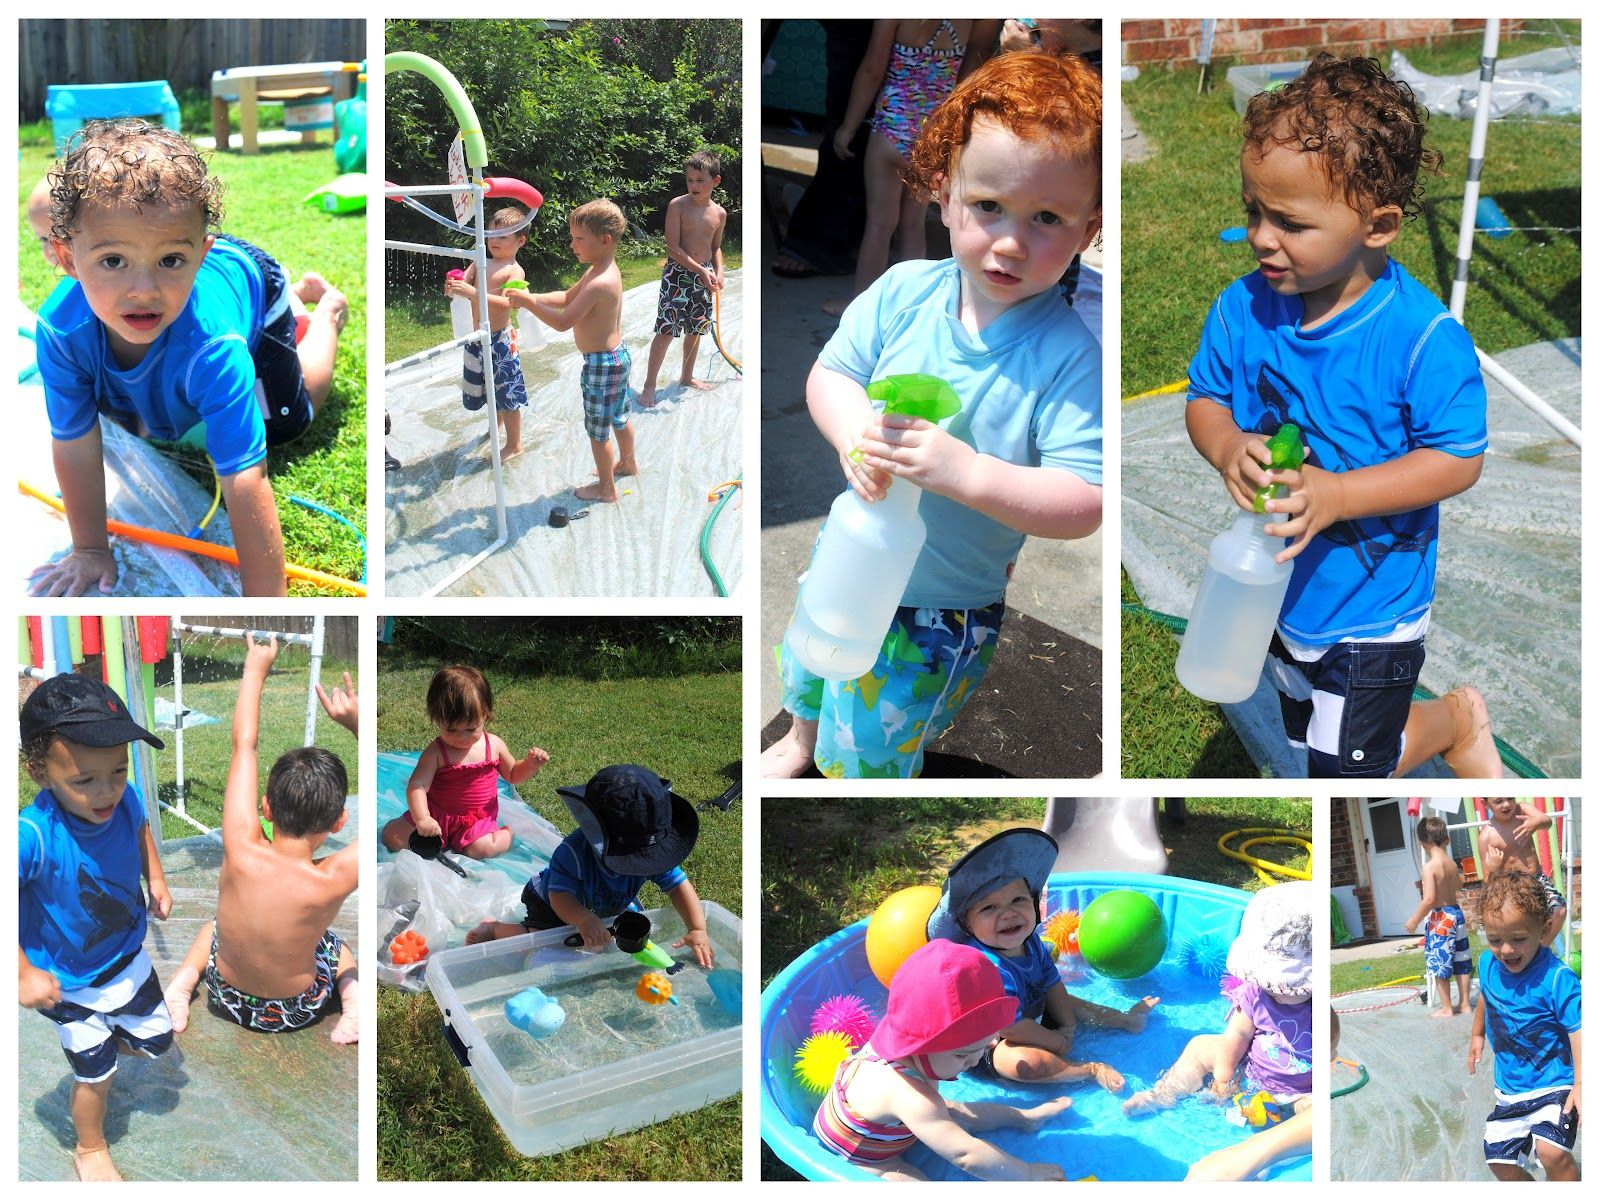 How To Throw The Perfect Sprinkler Party A Splish Splash Popsicle Bash Including